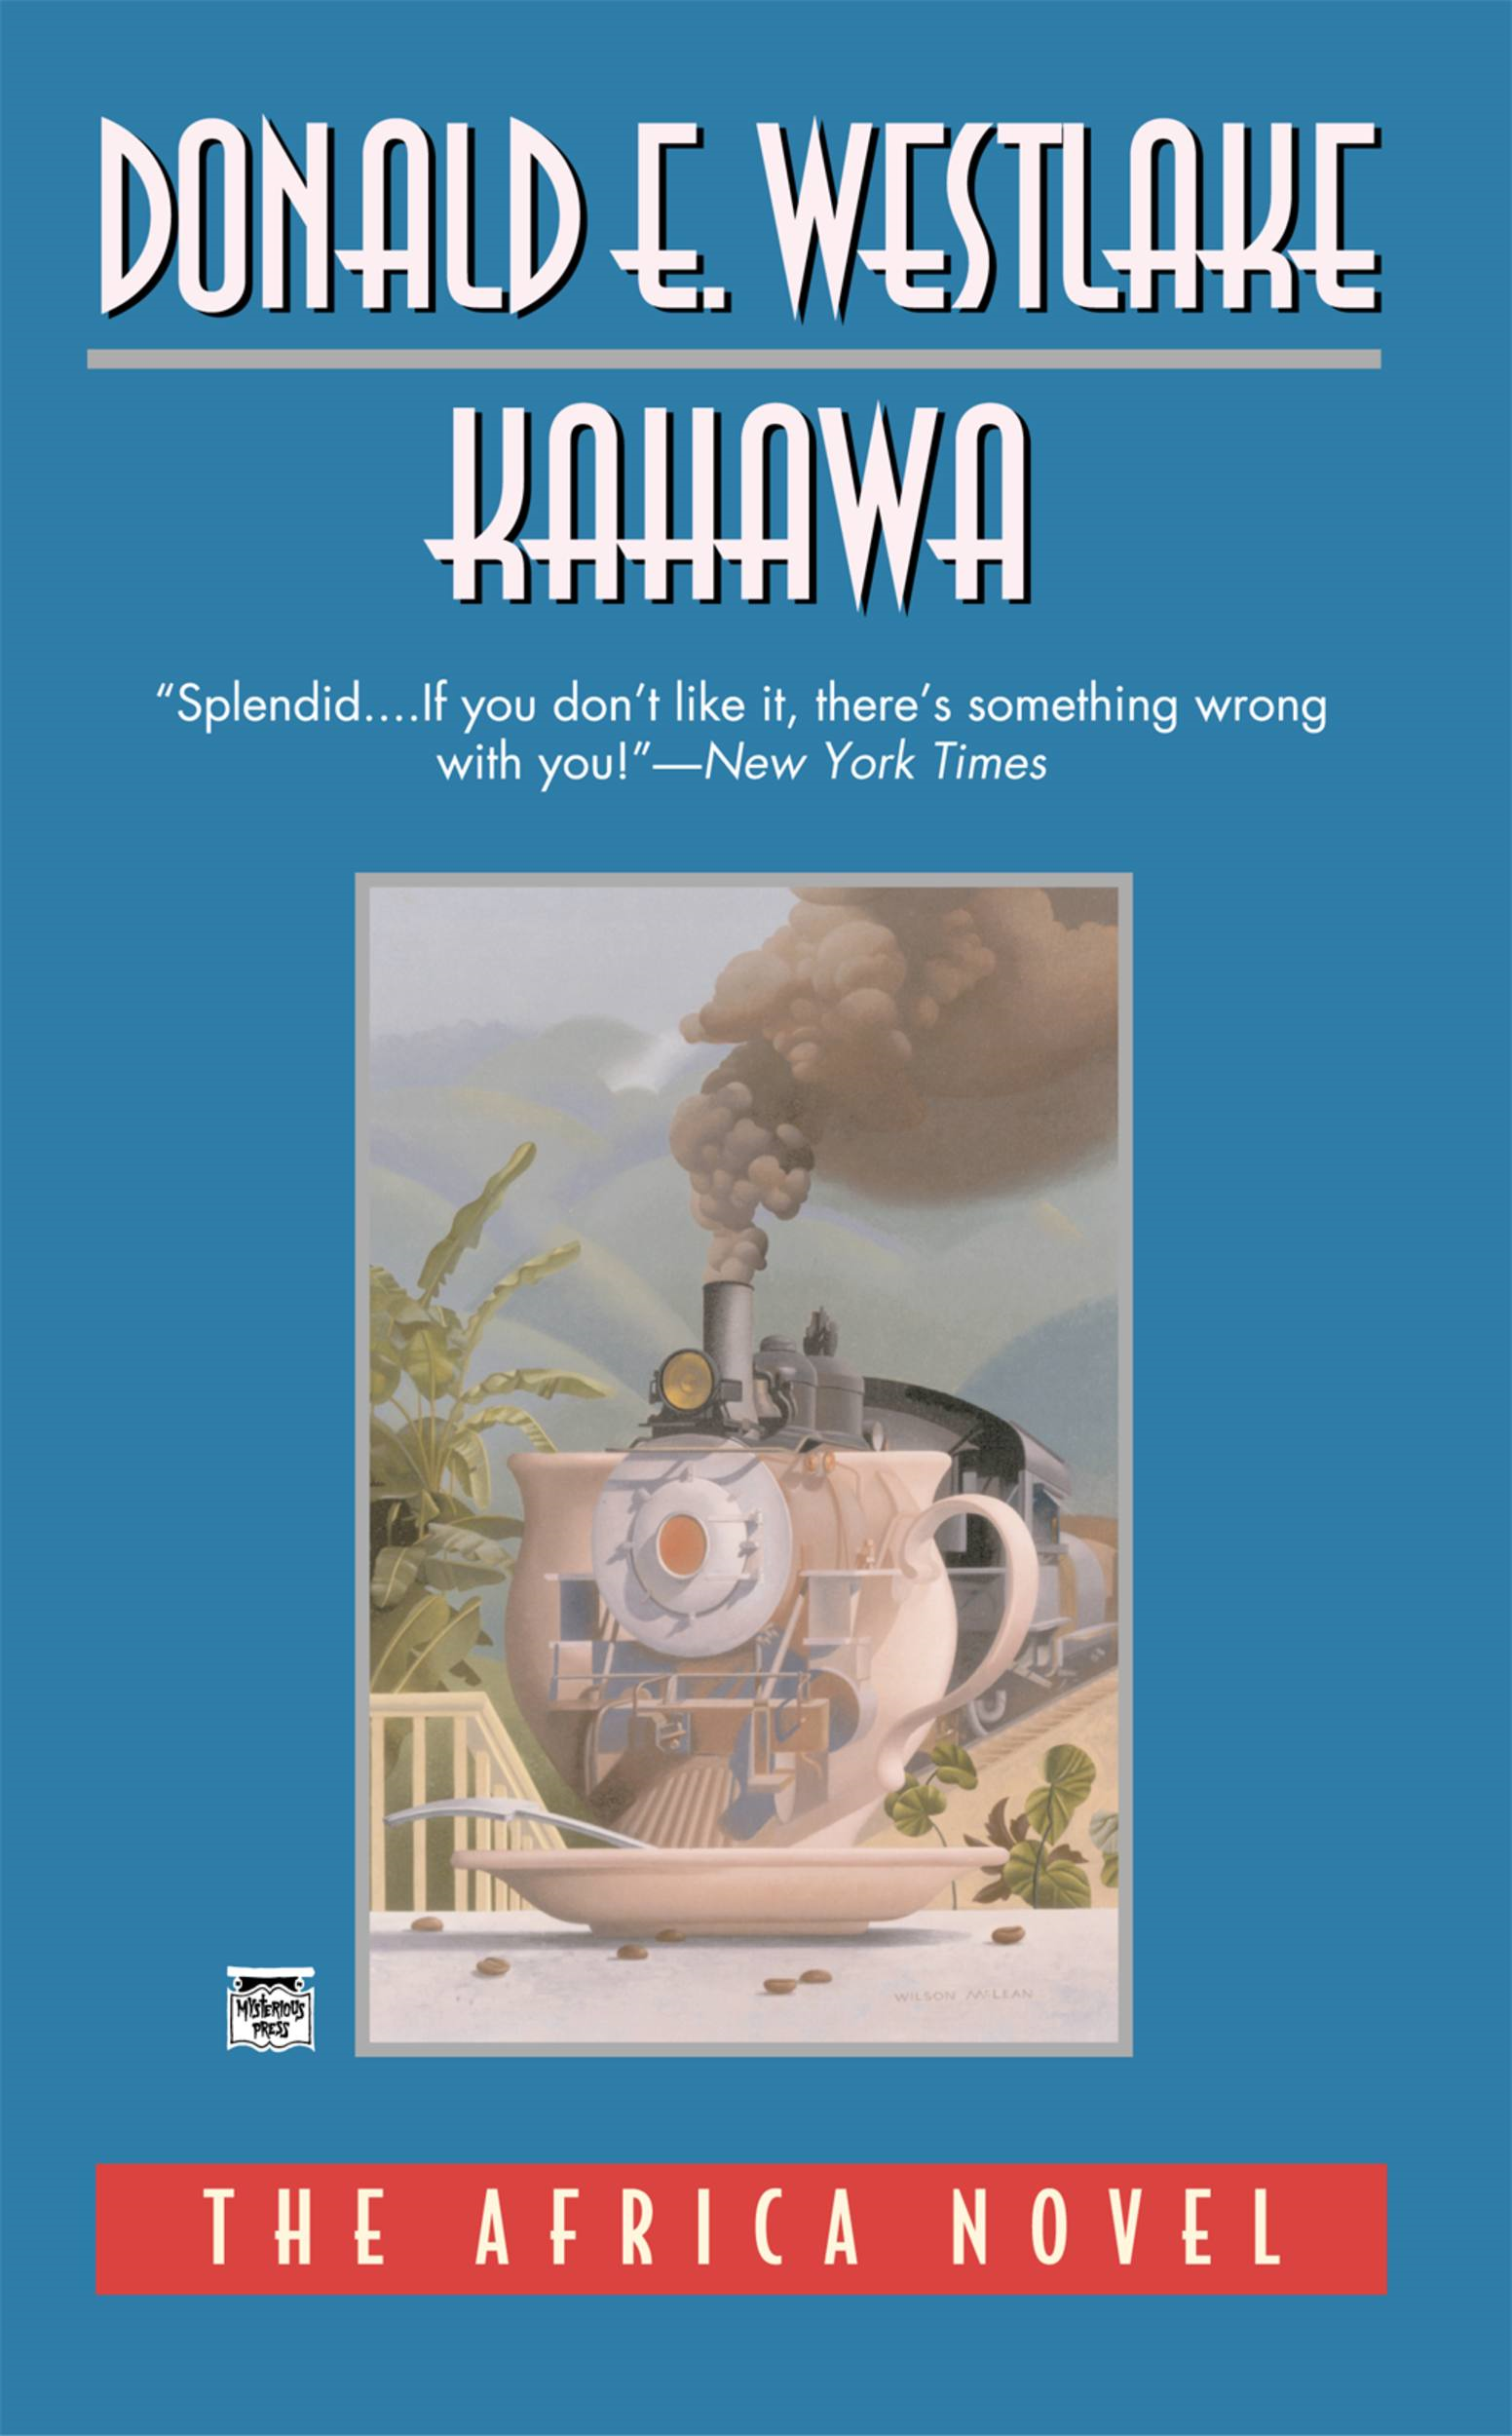 Kahawa By: Donald E. Westlake